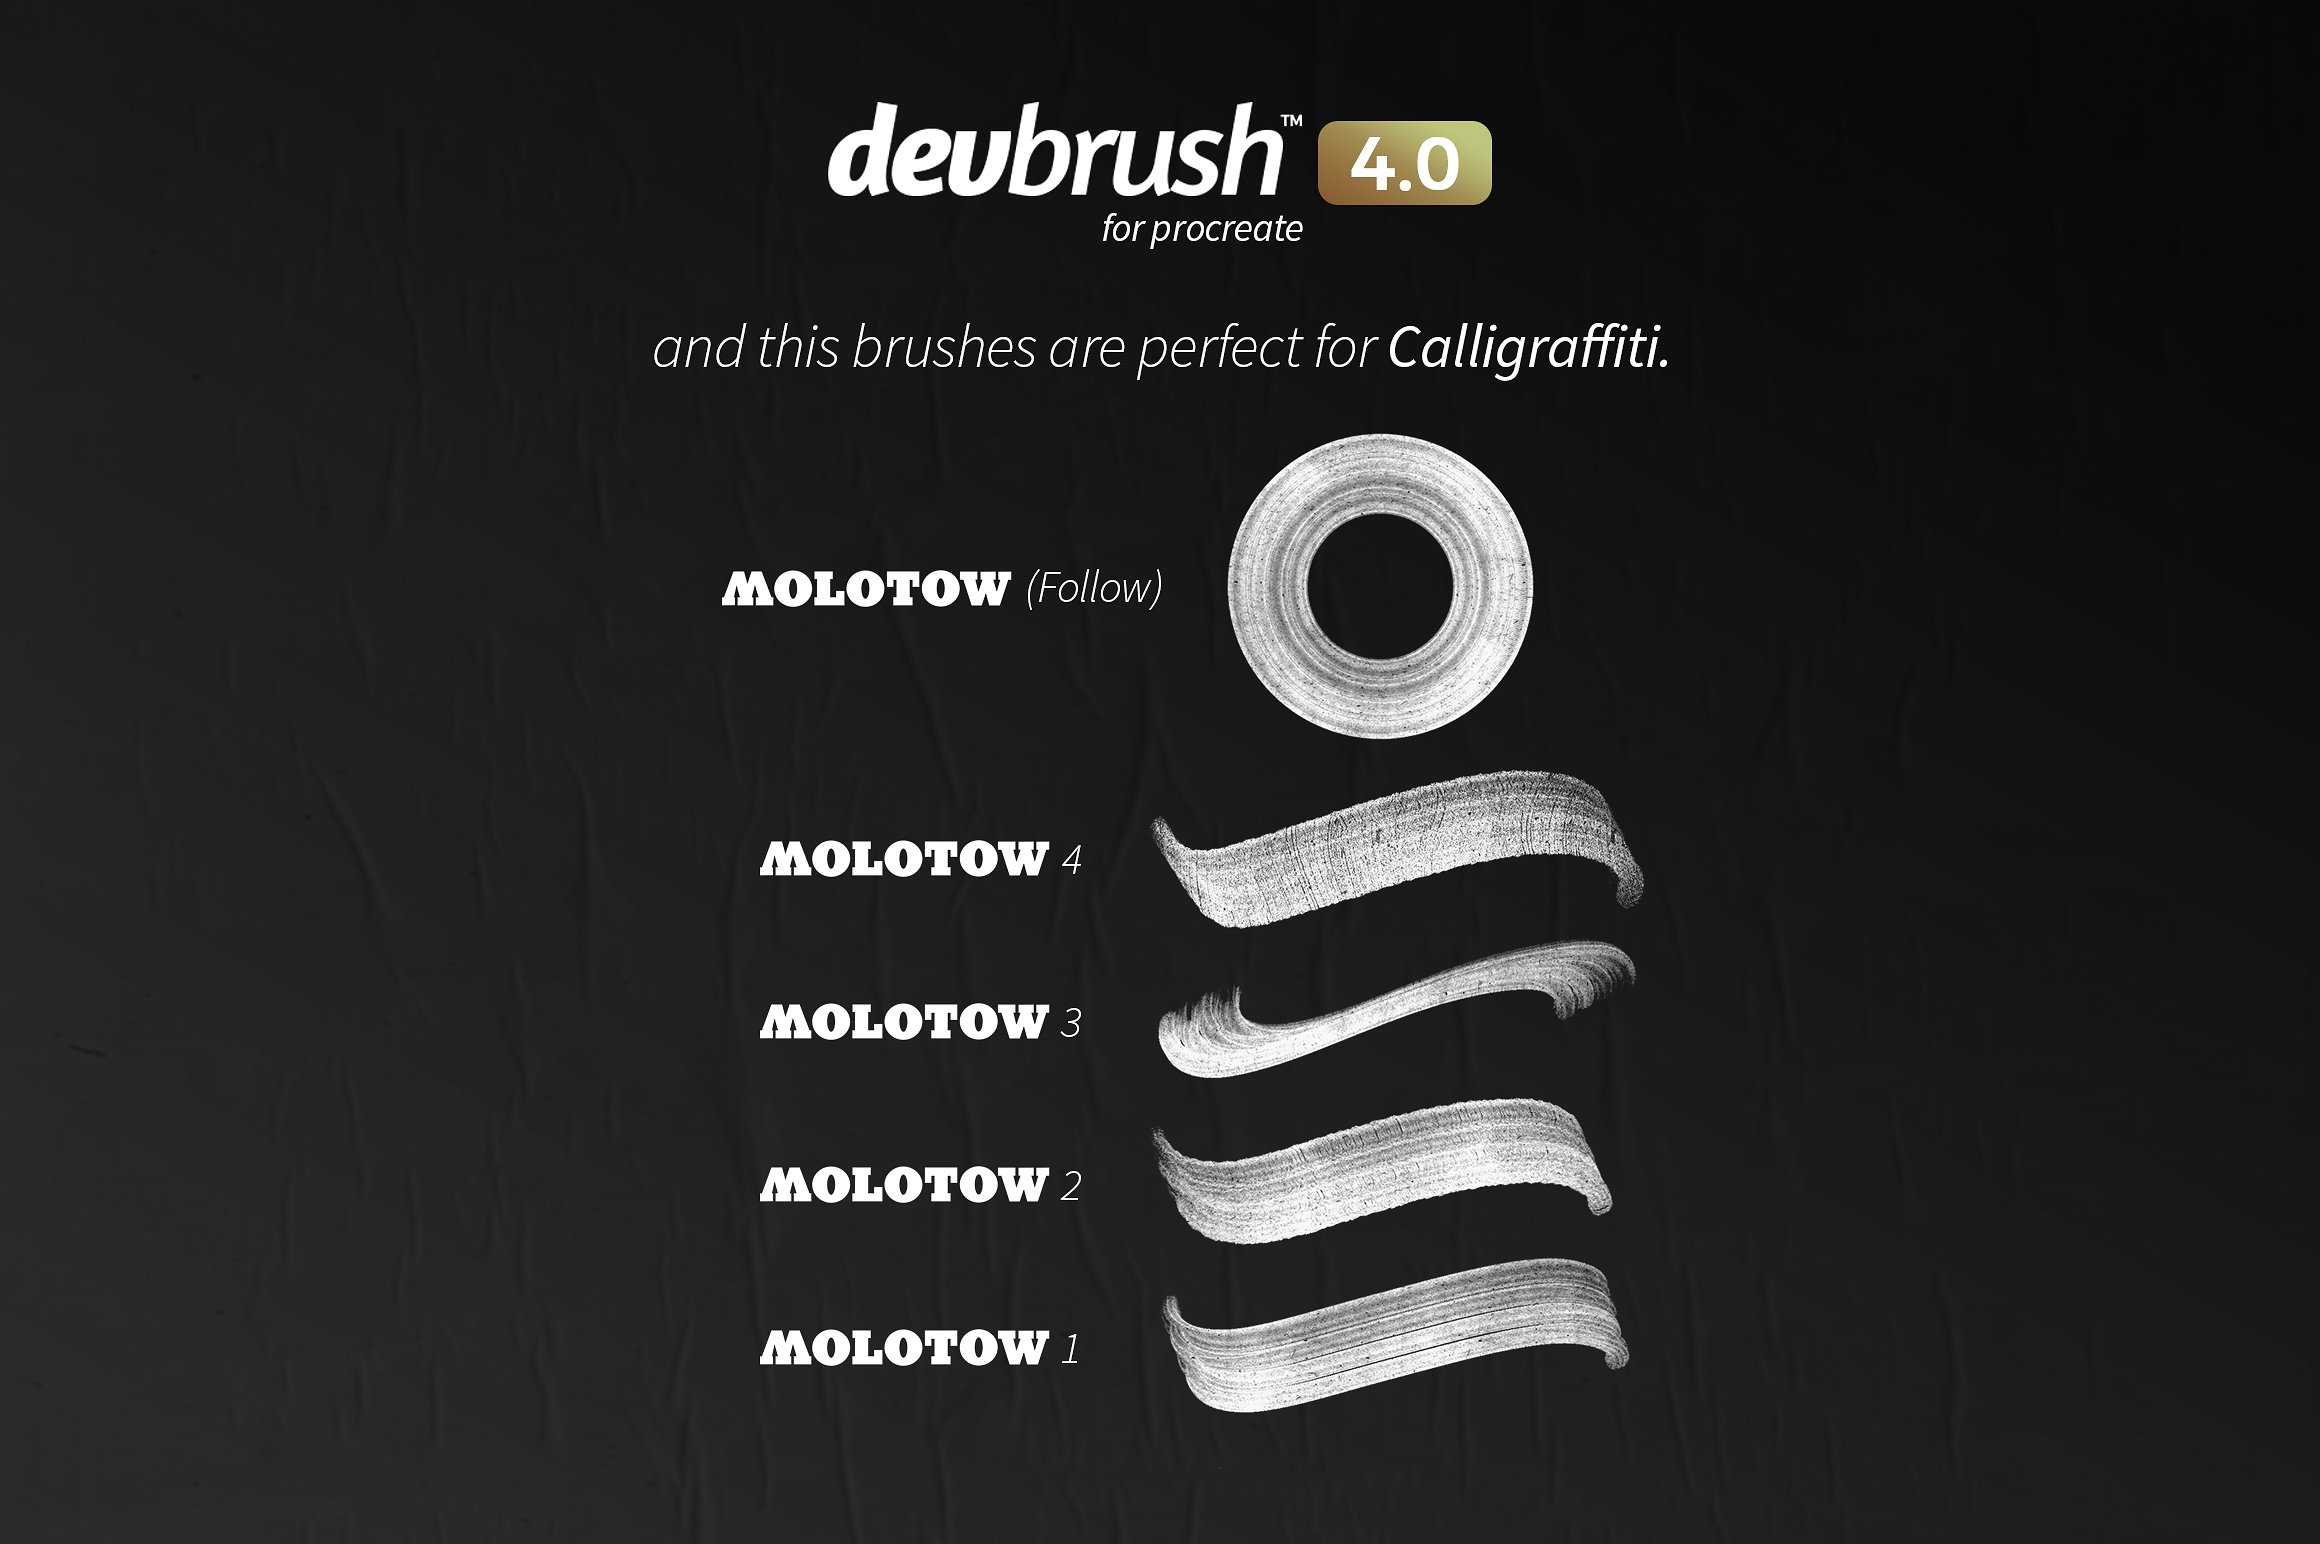 DevBrush 4.0 for Procreate